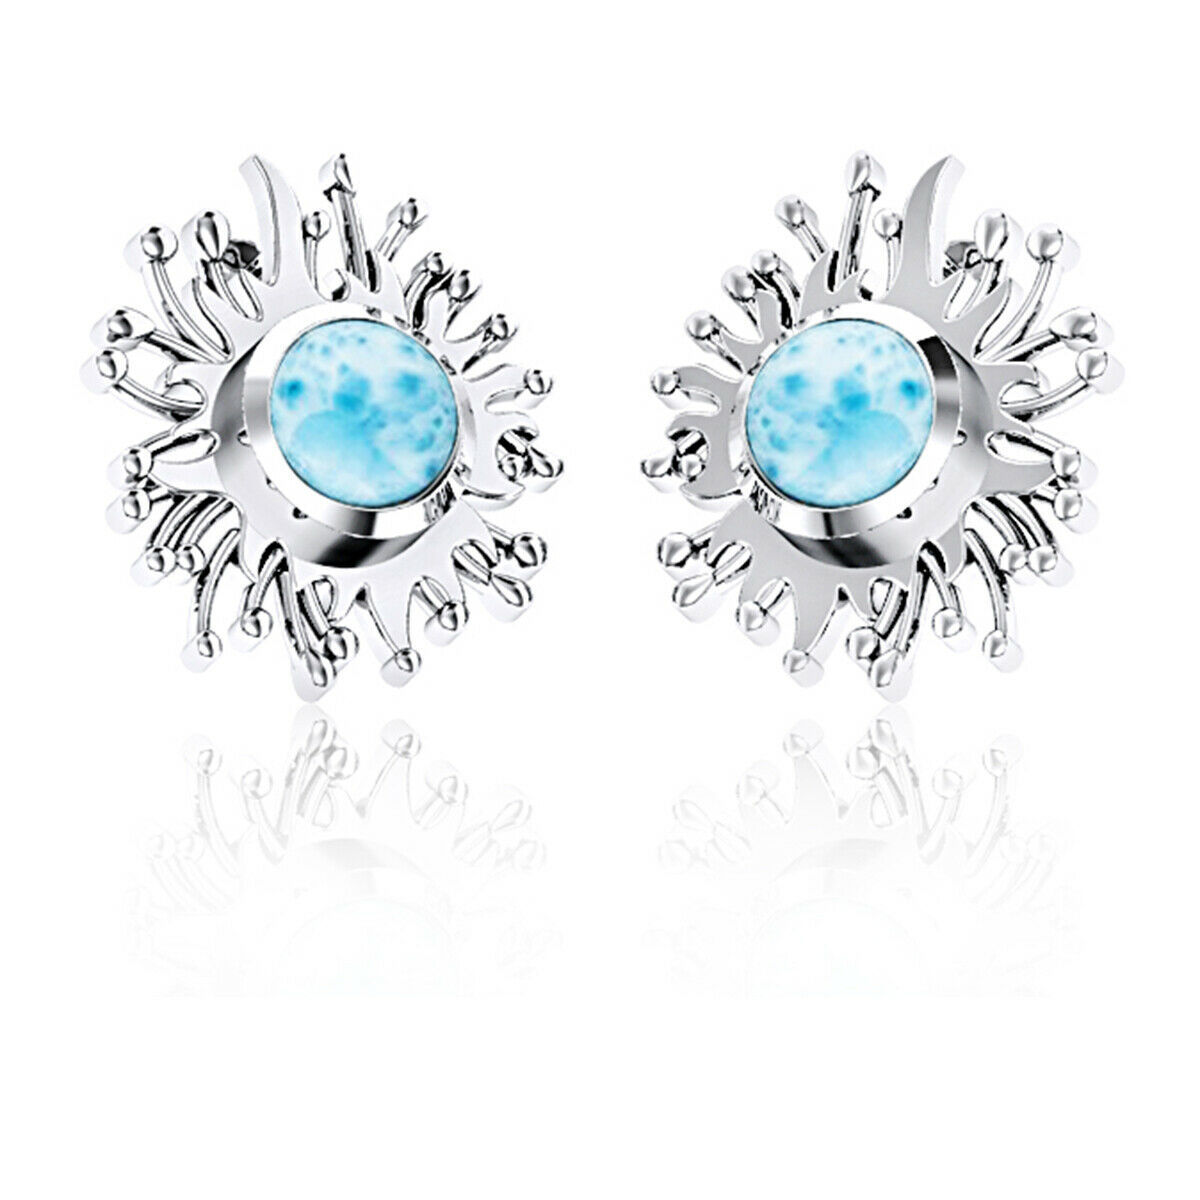 8 MM Round Larimar Daisy Sunflower Lazy Sun Stud Earring 925 Sterling Silver